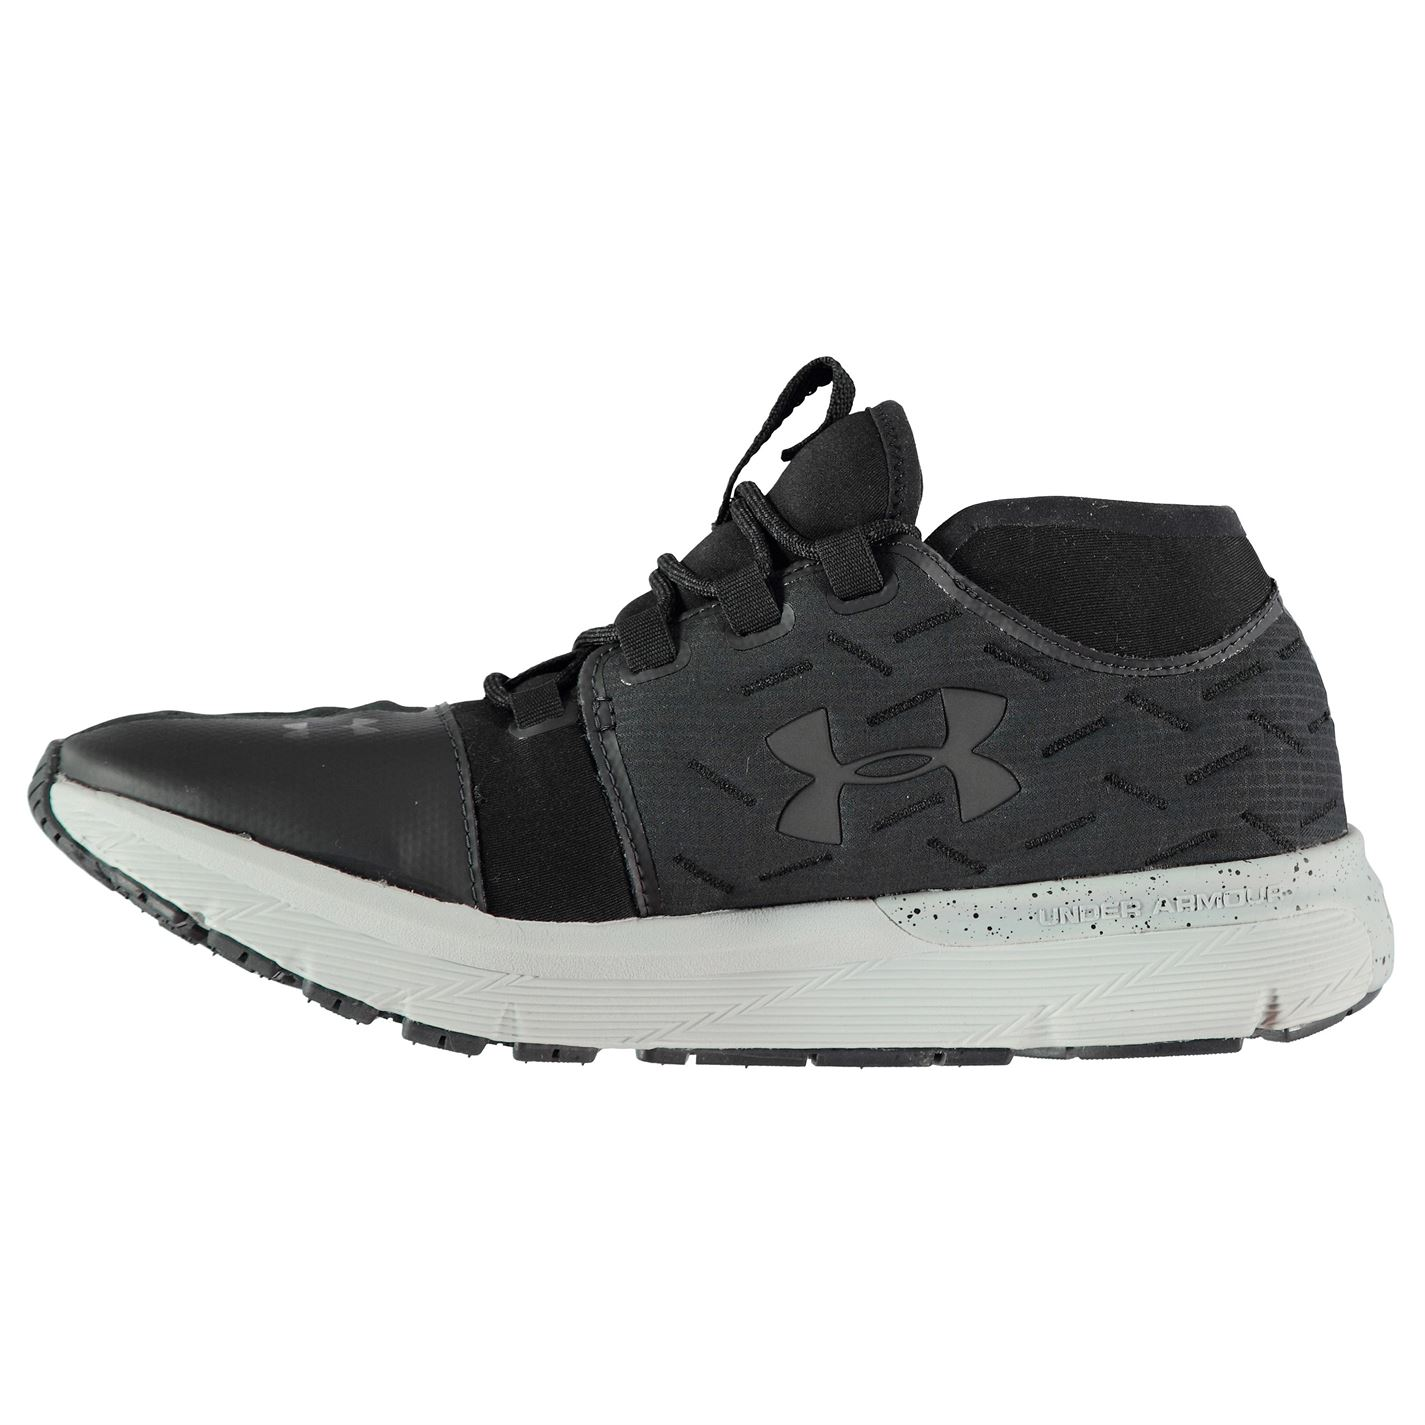 Armour Hombres Zapatos correr gris Under negro Gents para Cordones Corredores Run Charged Reactor 4Yqd0